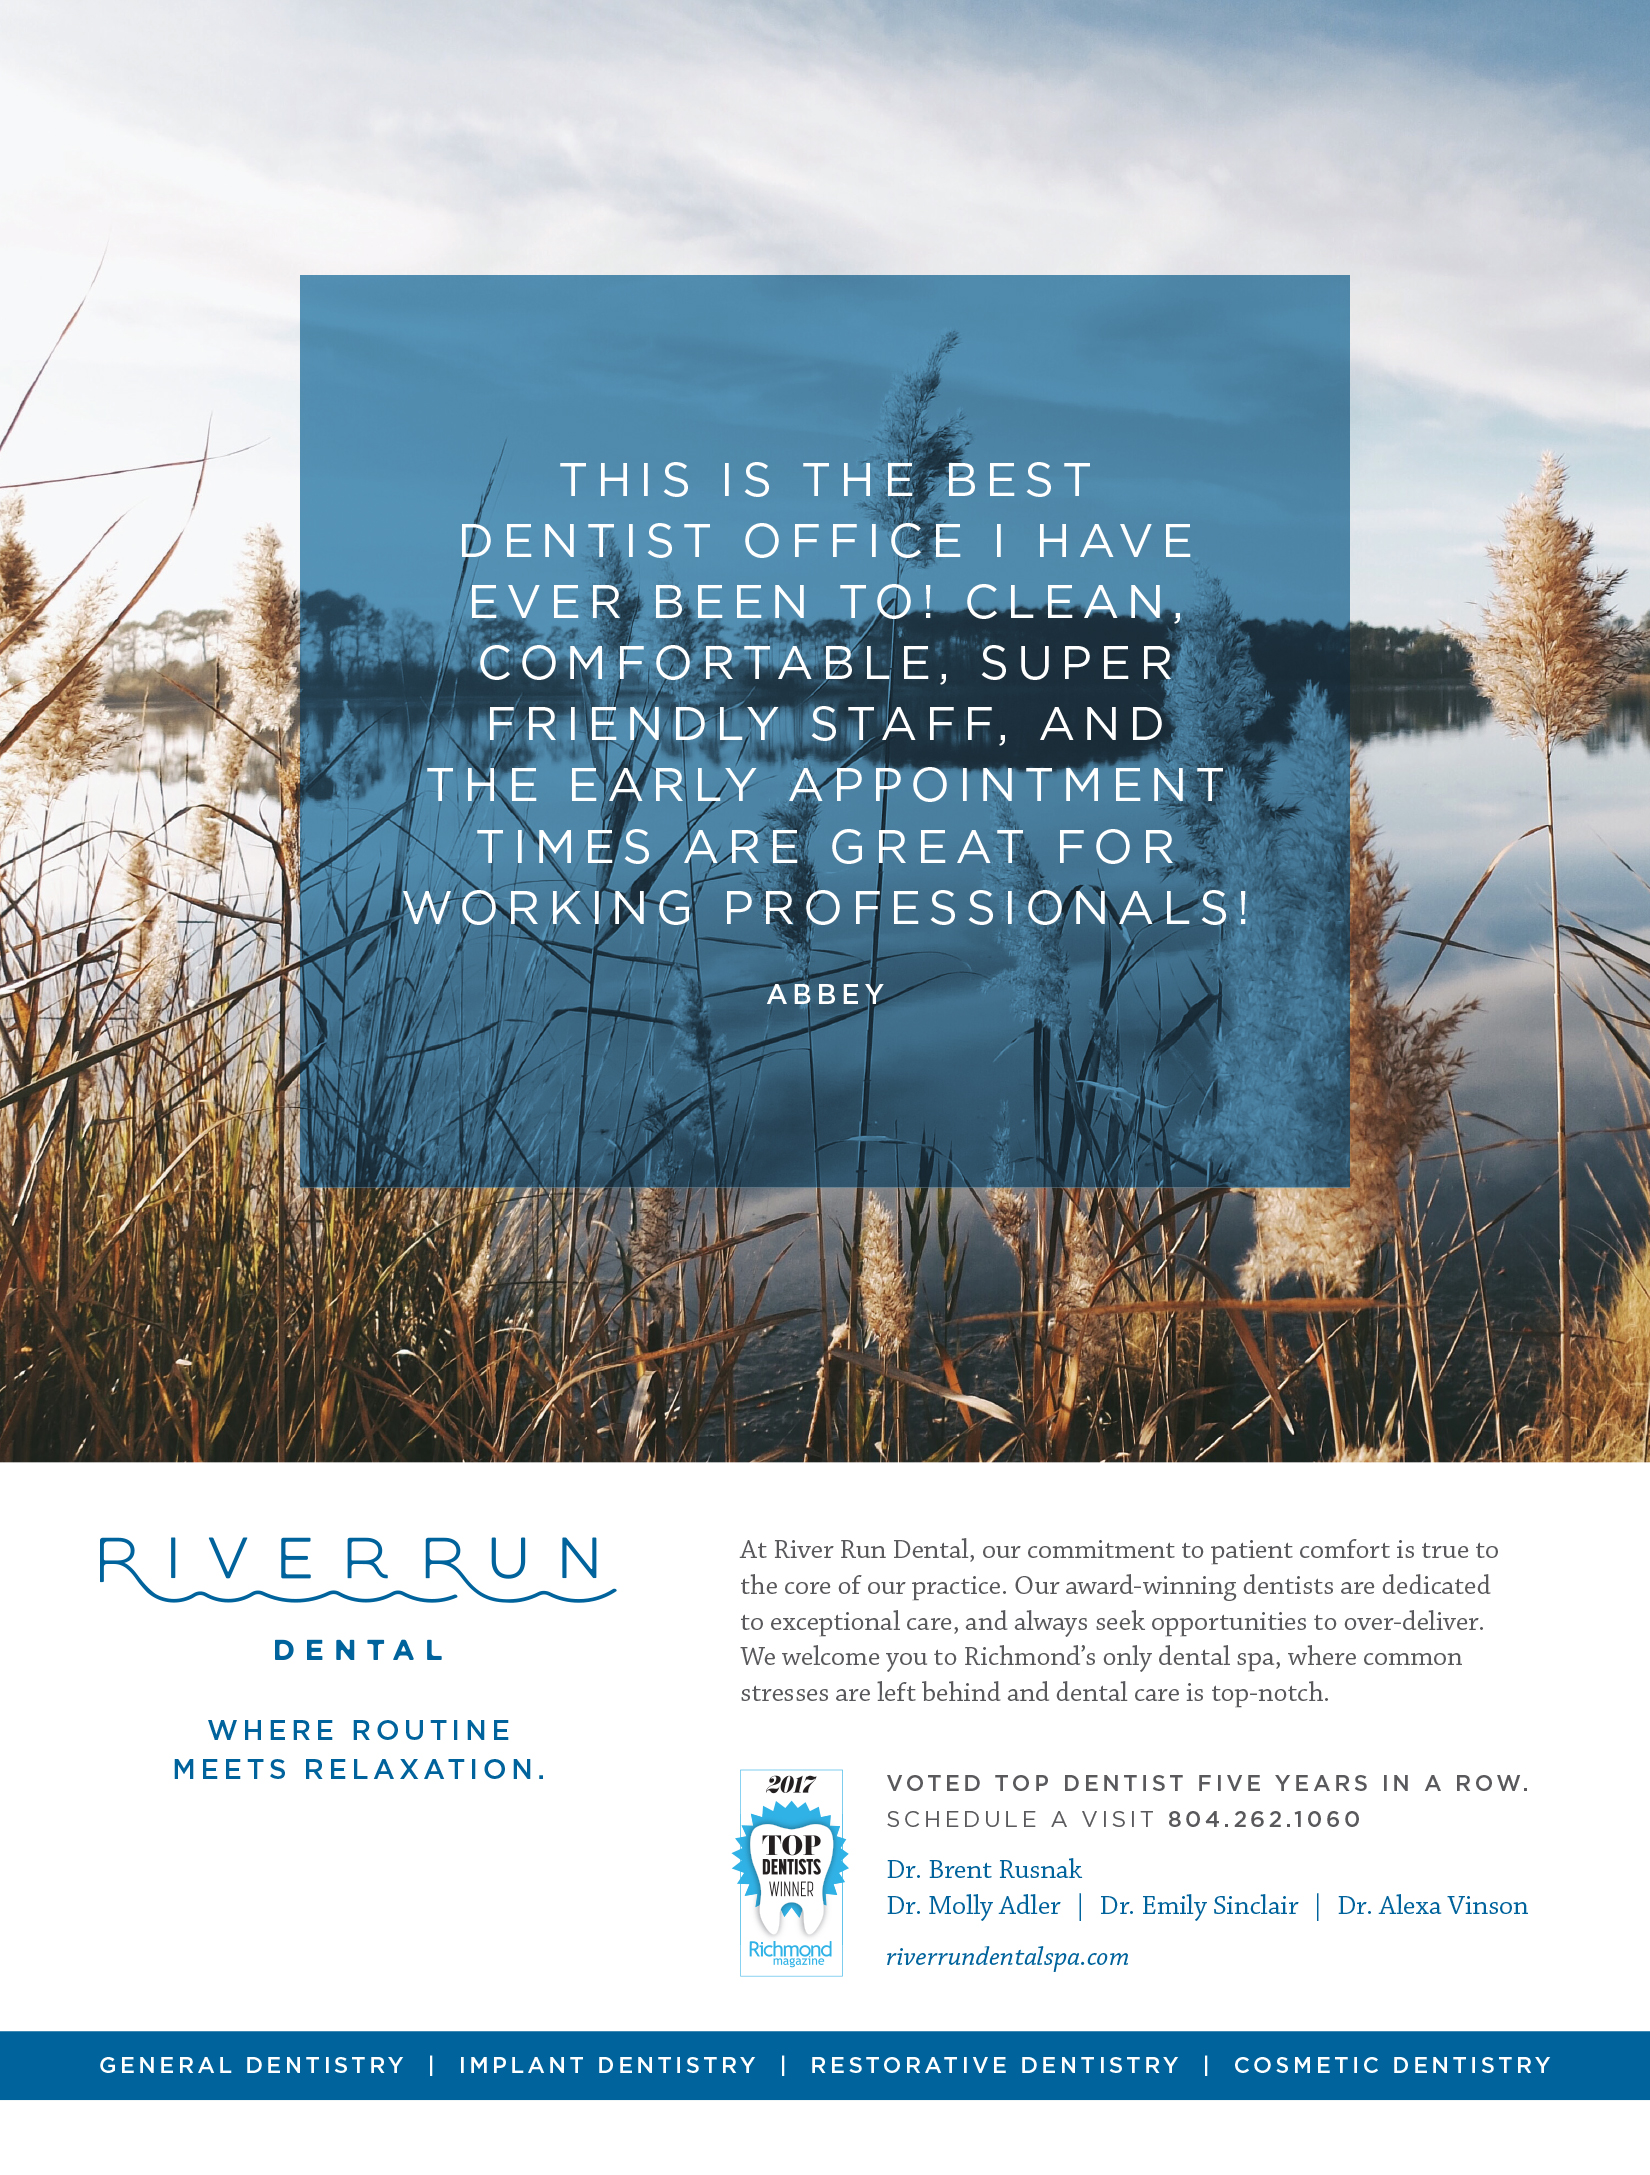 Print Ad for River Run Dental Spa